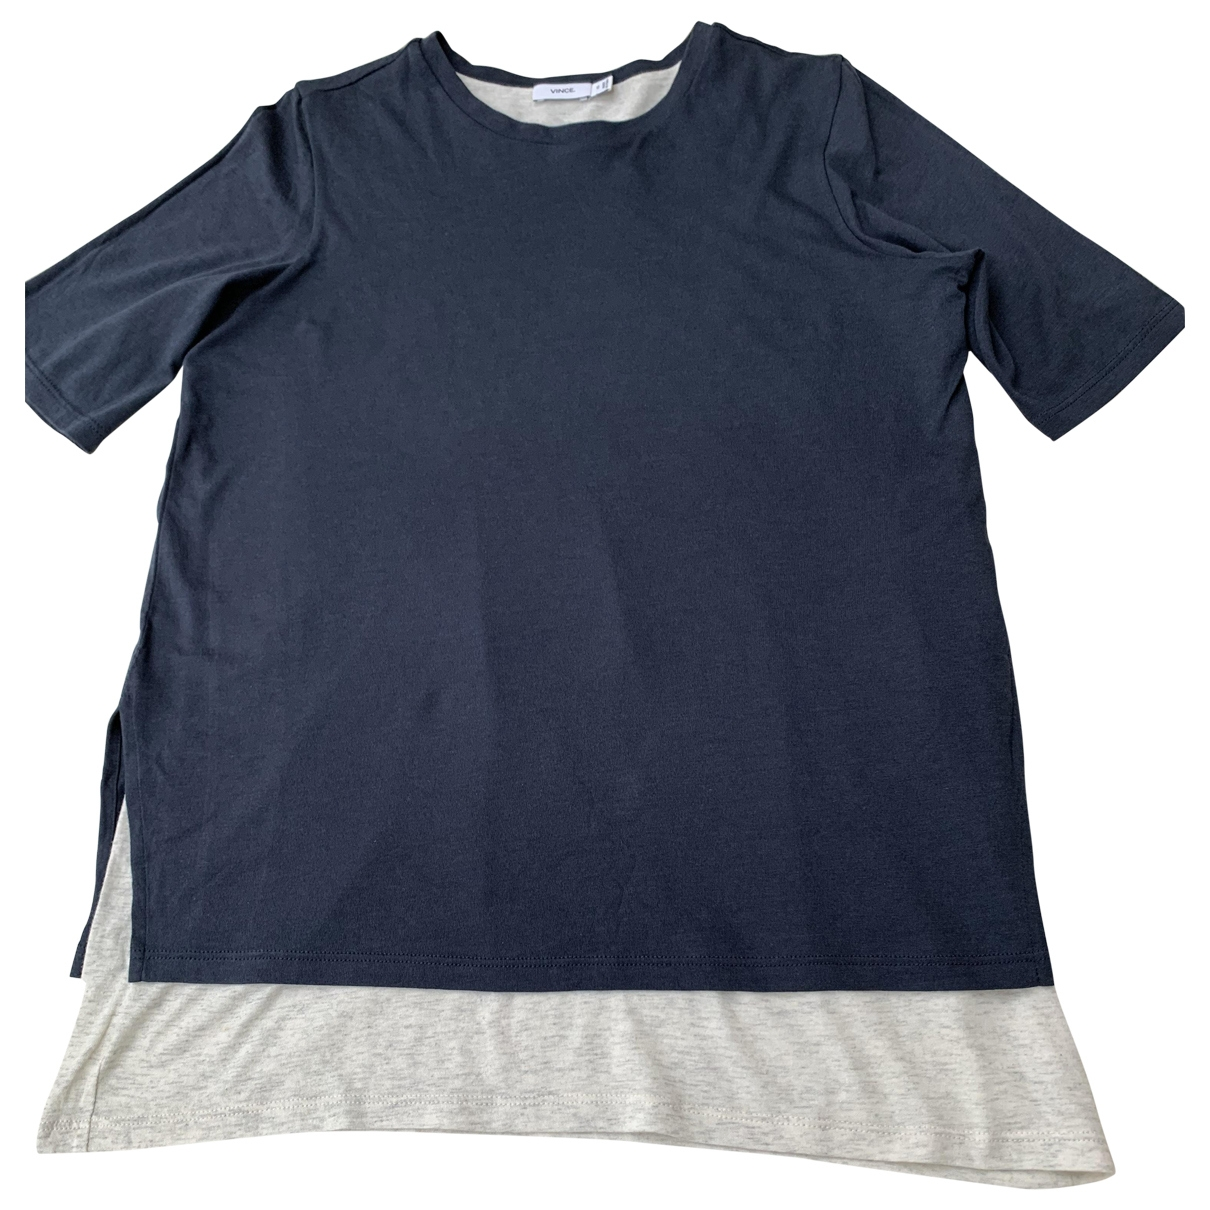 Vince \N Grey Cotton  top for Women 6 UK